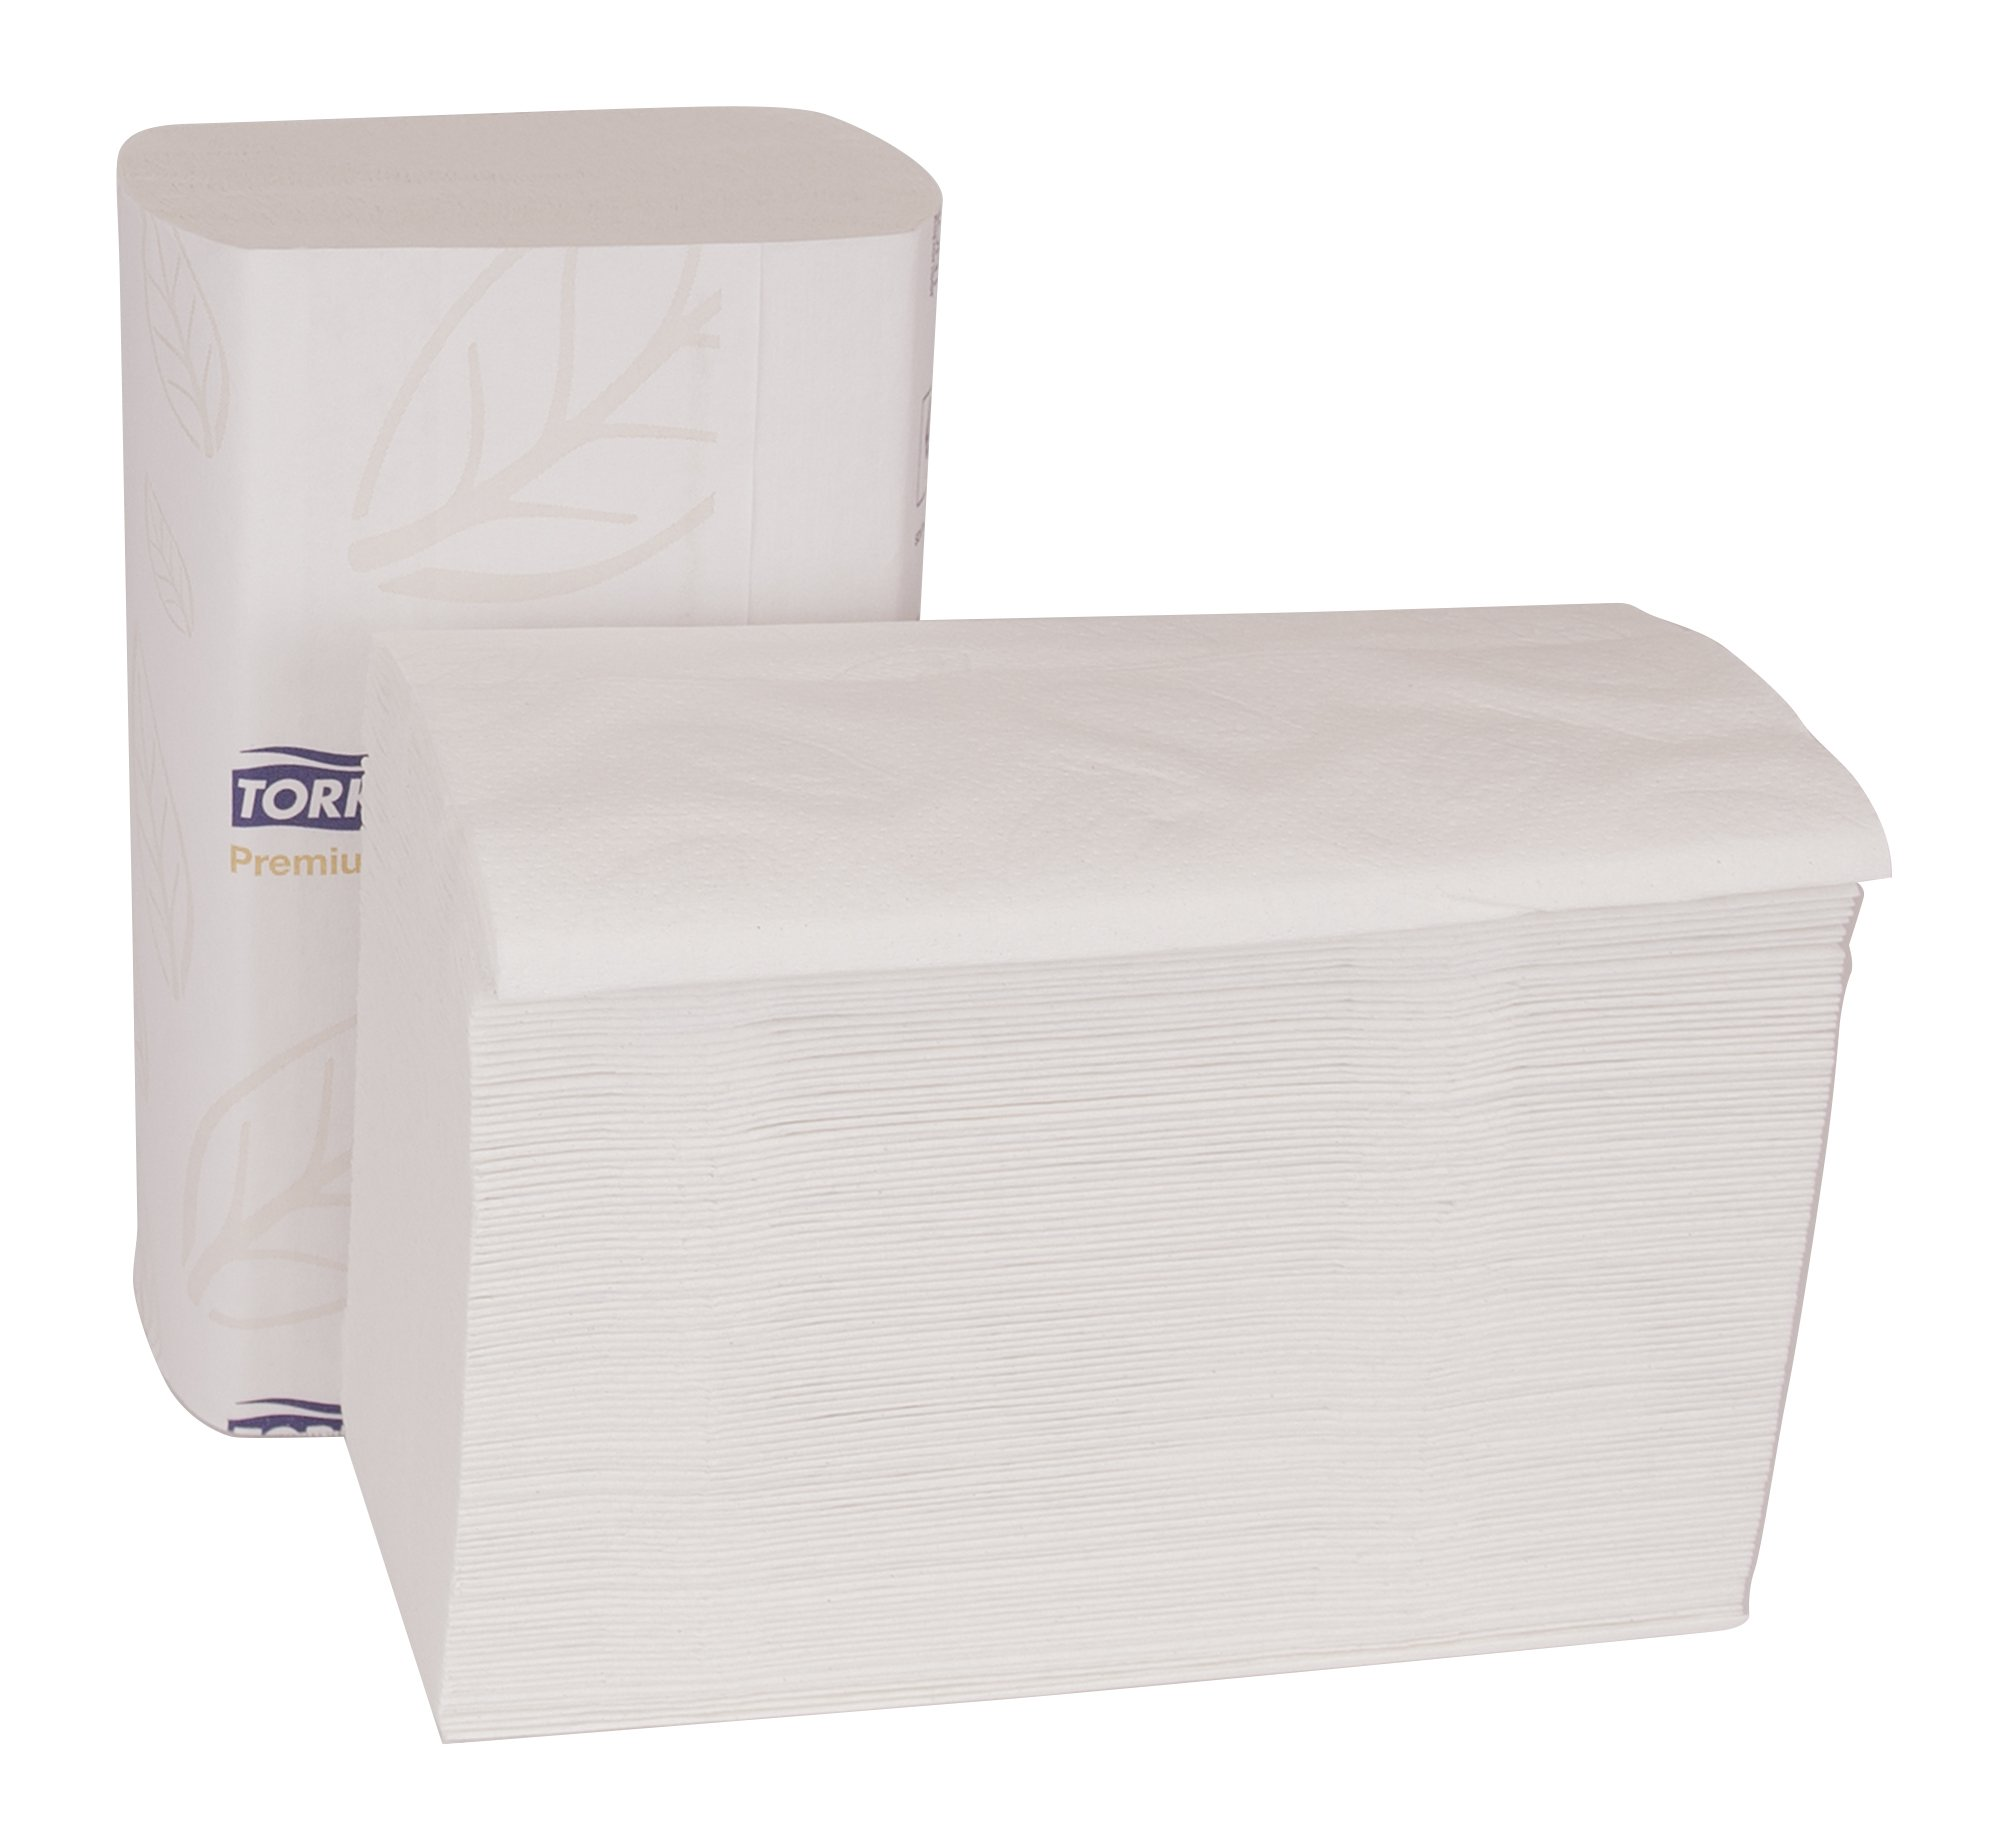 Tork Premium MB574 Soft Xpress Multifold Paper Hand Towel, 4-Panel, 2-Ply, 8.4'' Width x 14.5'' Length, White (Case of 32 Packs, 94 per Pack, 3,008 Towels) by Tork (Image #6)